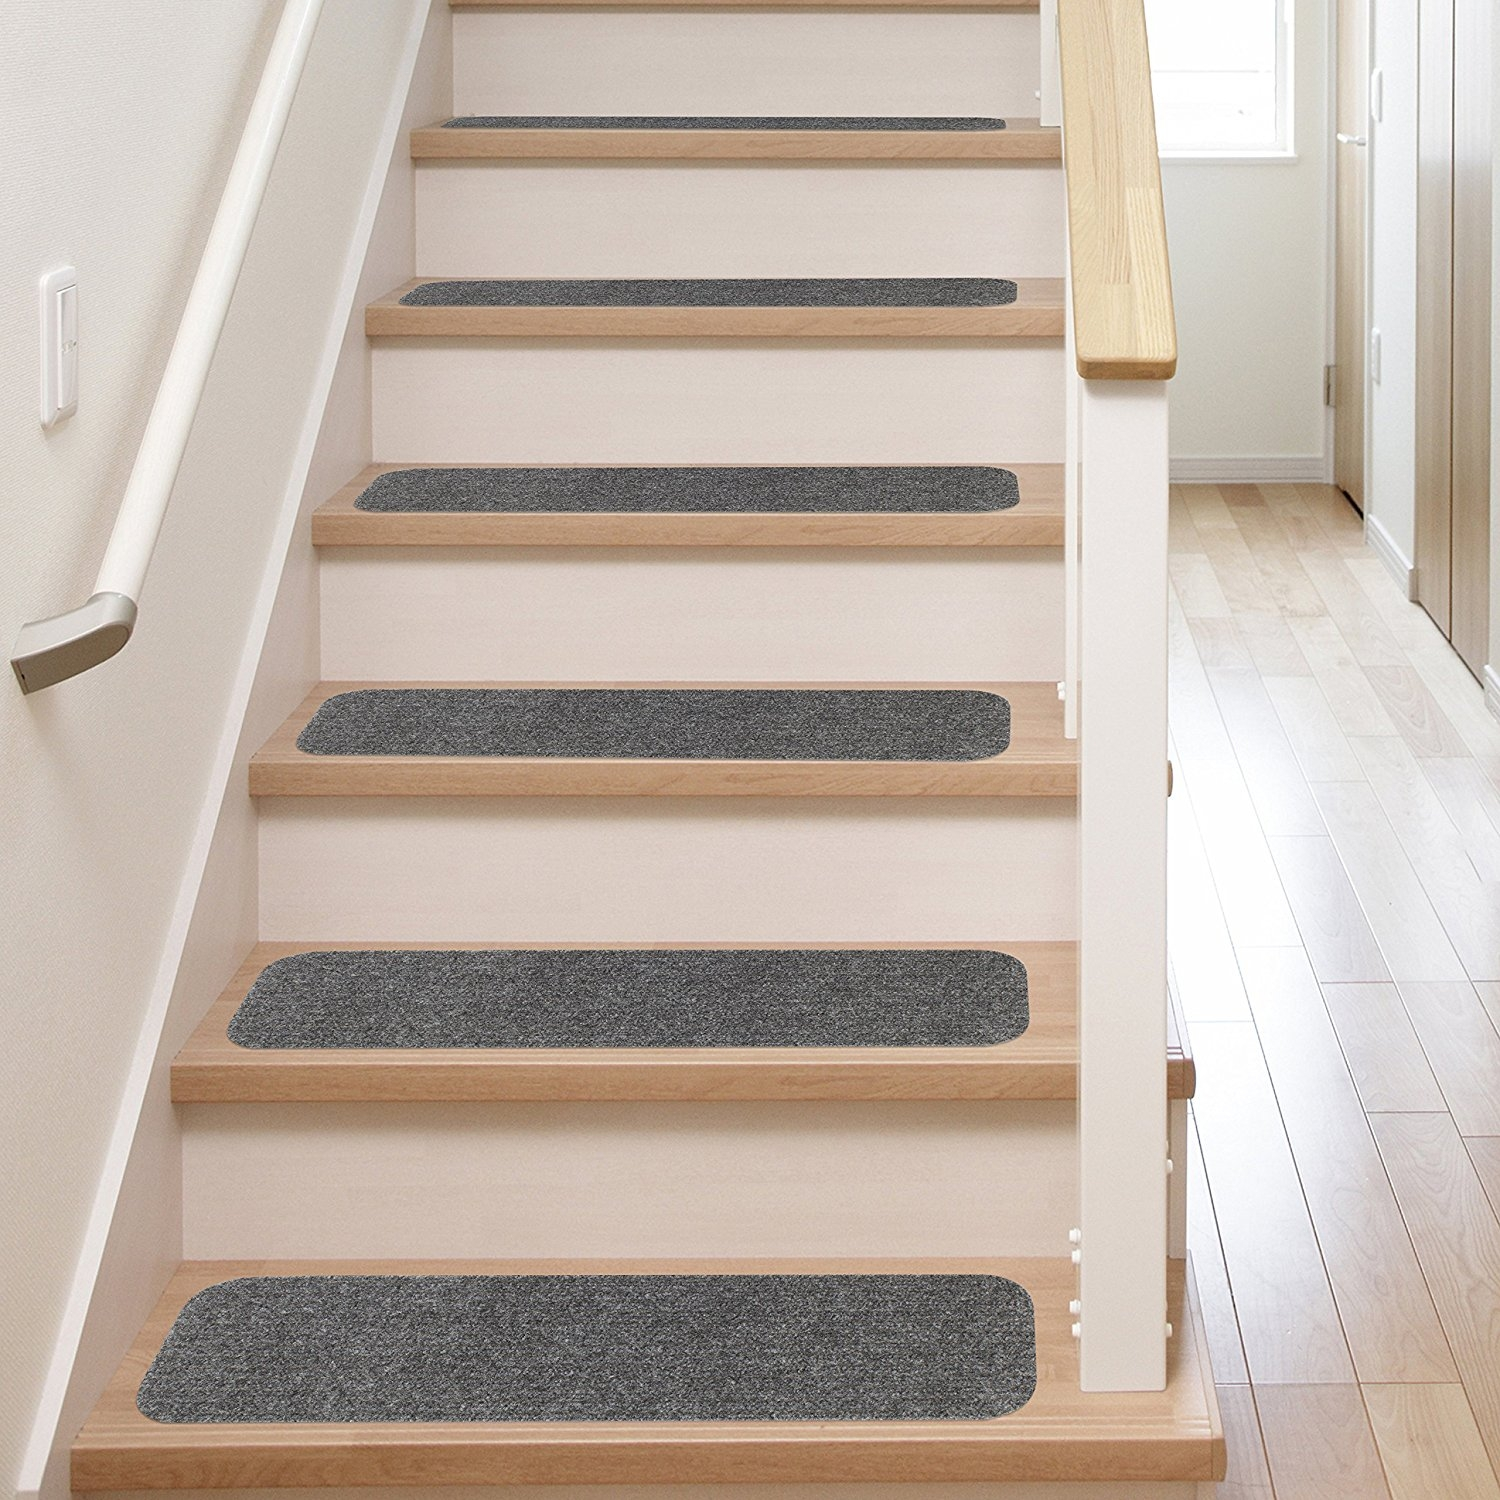 13 Stair Treads Non Slip Carpet Pads Easy Tape Installation Within Adhesive Carpet Stair Treads (View 5 of 20)